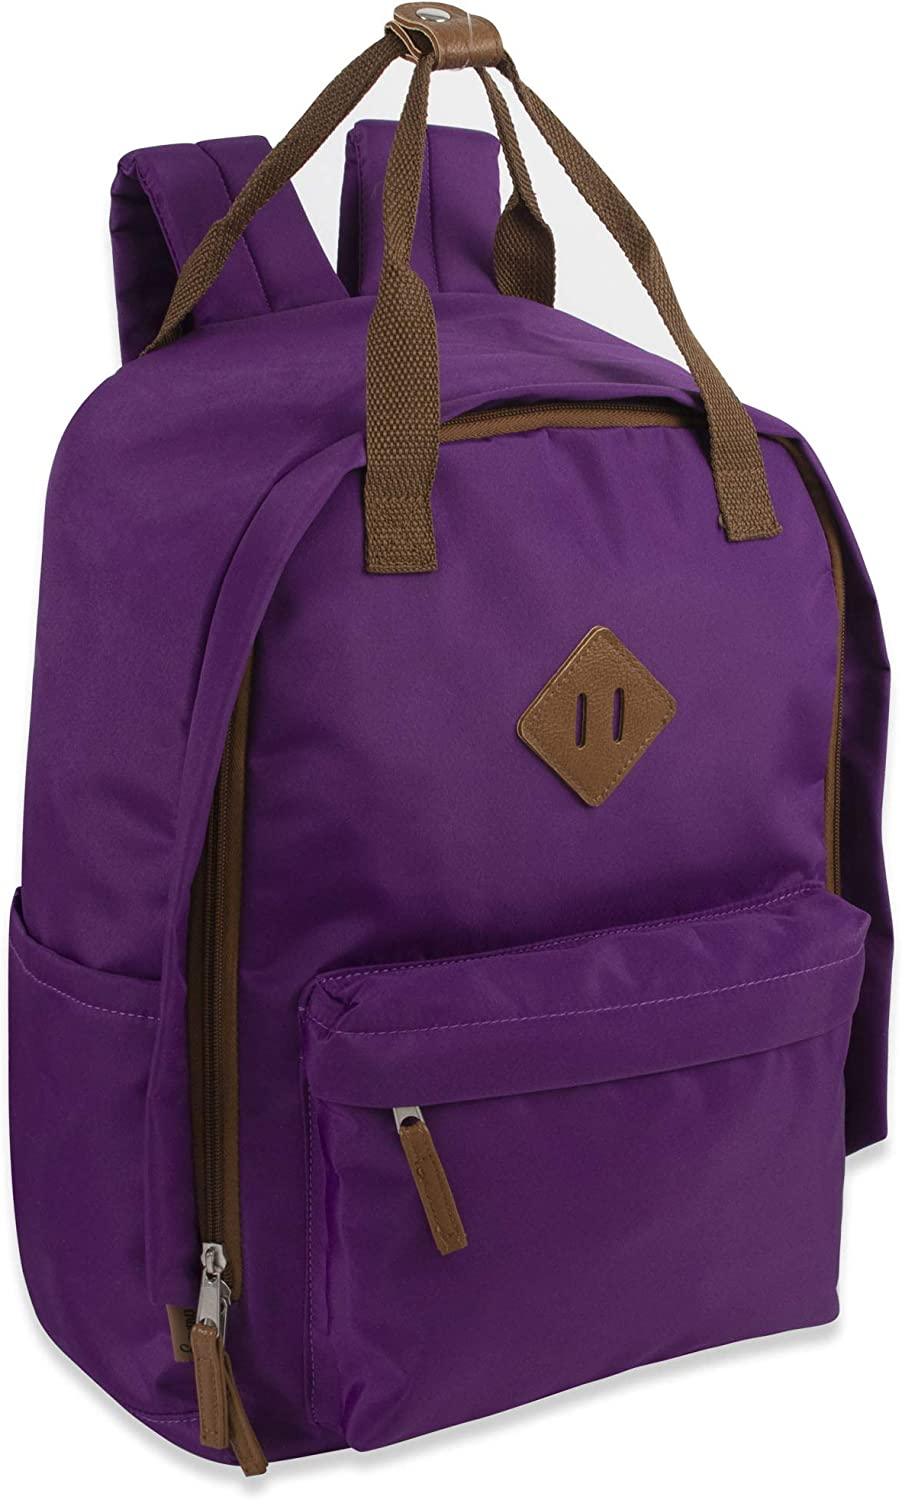 Emma & Chloe Microfiber Laptop Bag - Purple Backpack Purse for Women for College, Work, and Travel Luggage Carry On Bag